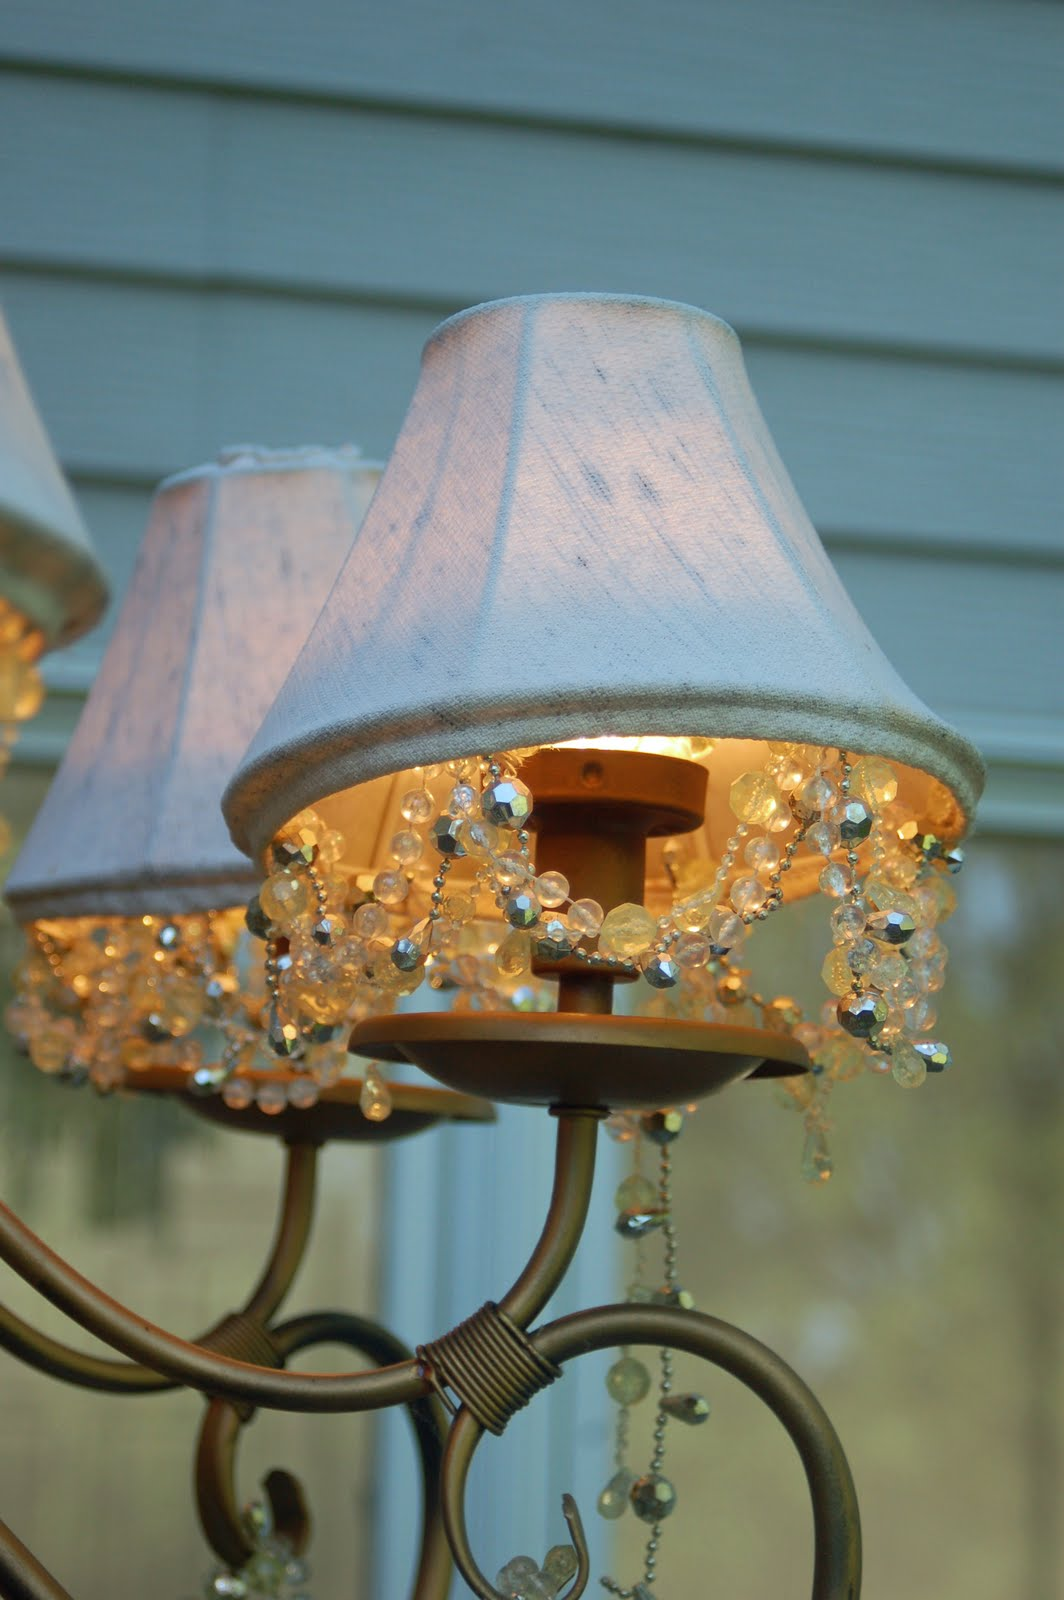 Chandelier Shade And Beads